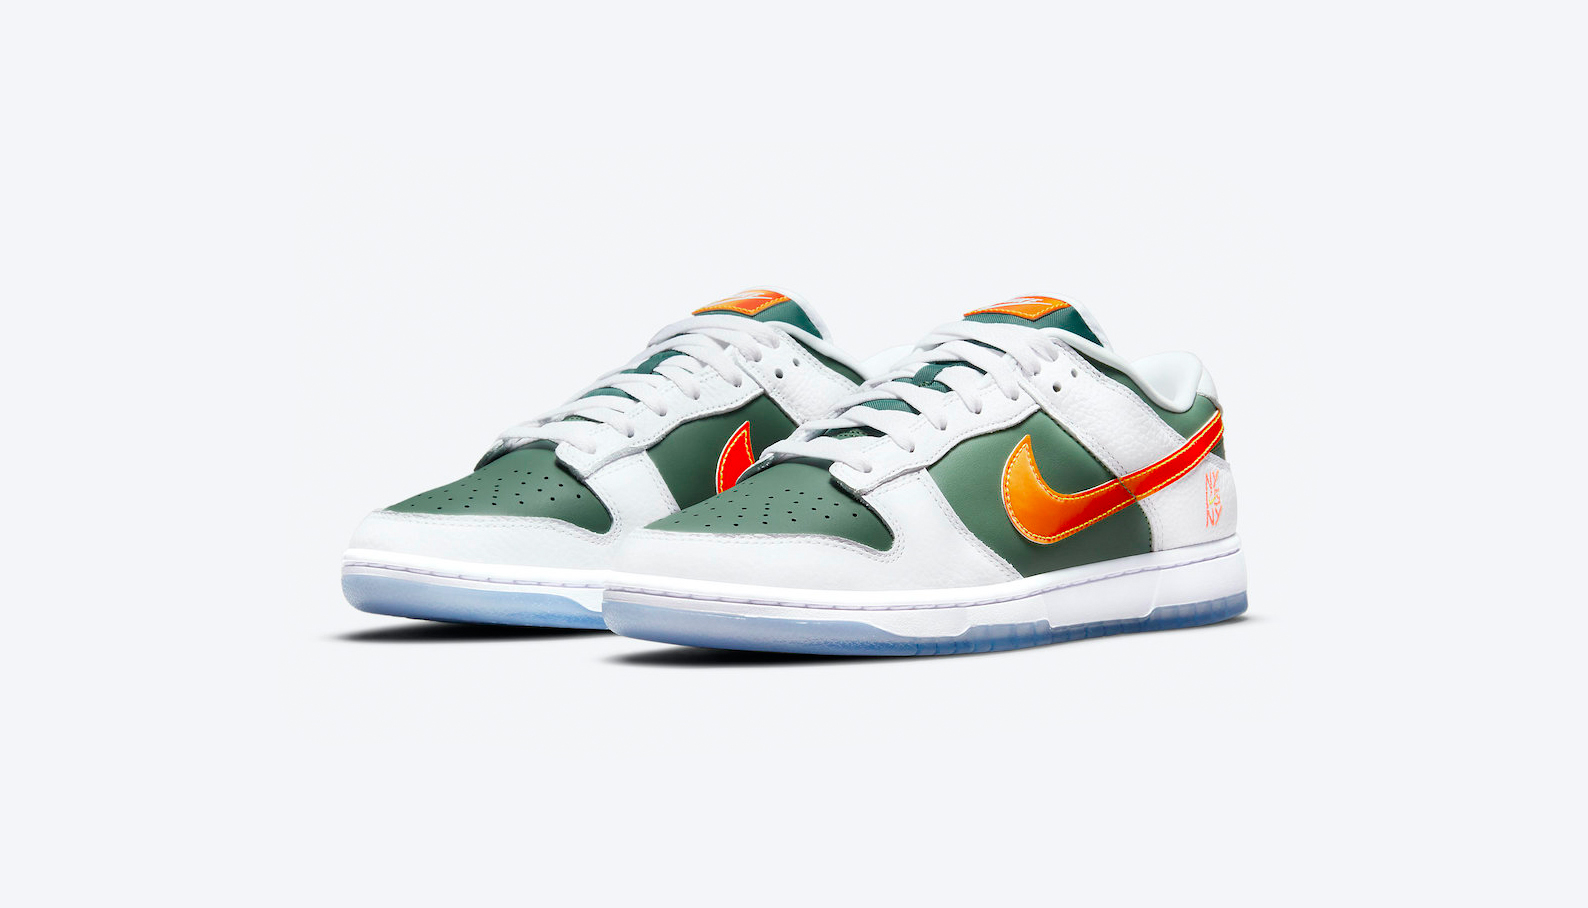 Preview: Nike Dunk Low